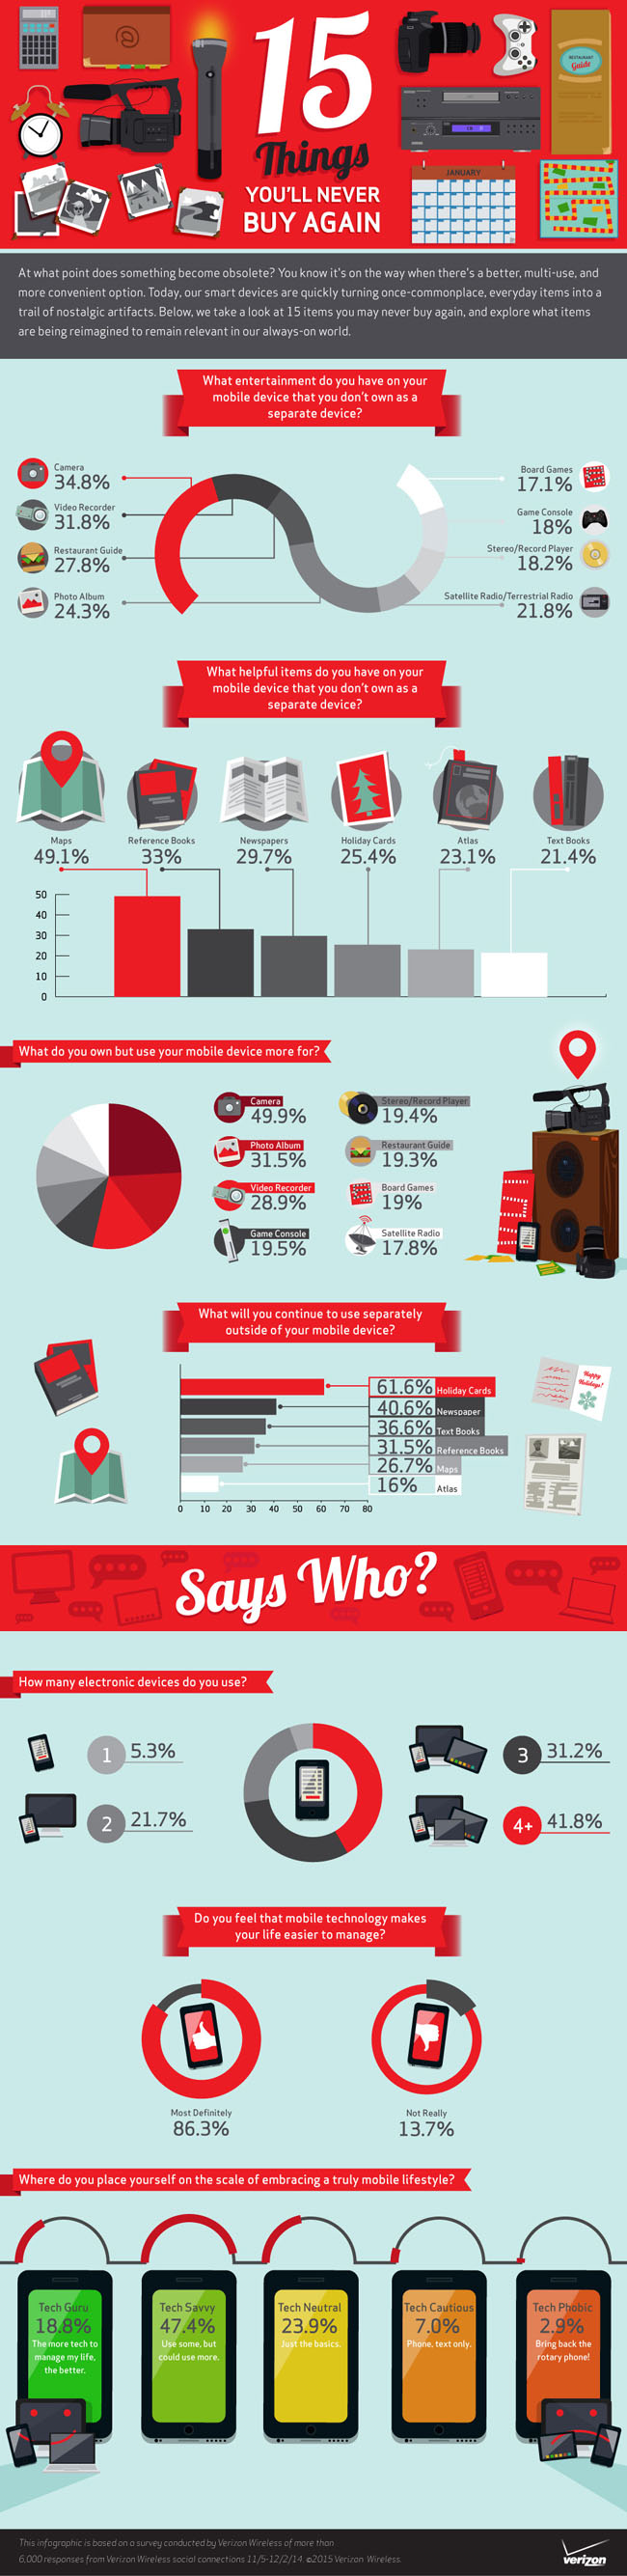 Technology | Infographic from Verizon Wireless about 15 Things You'll Never Buy Again. Do you agree with it?